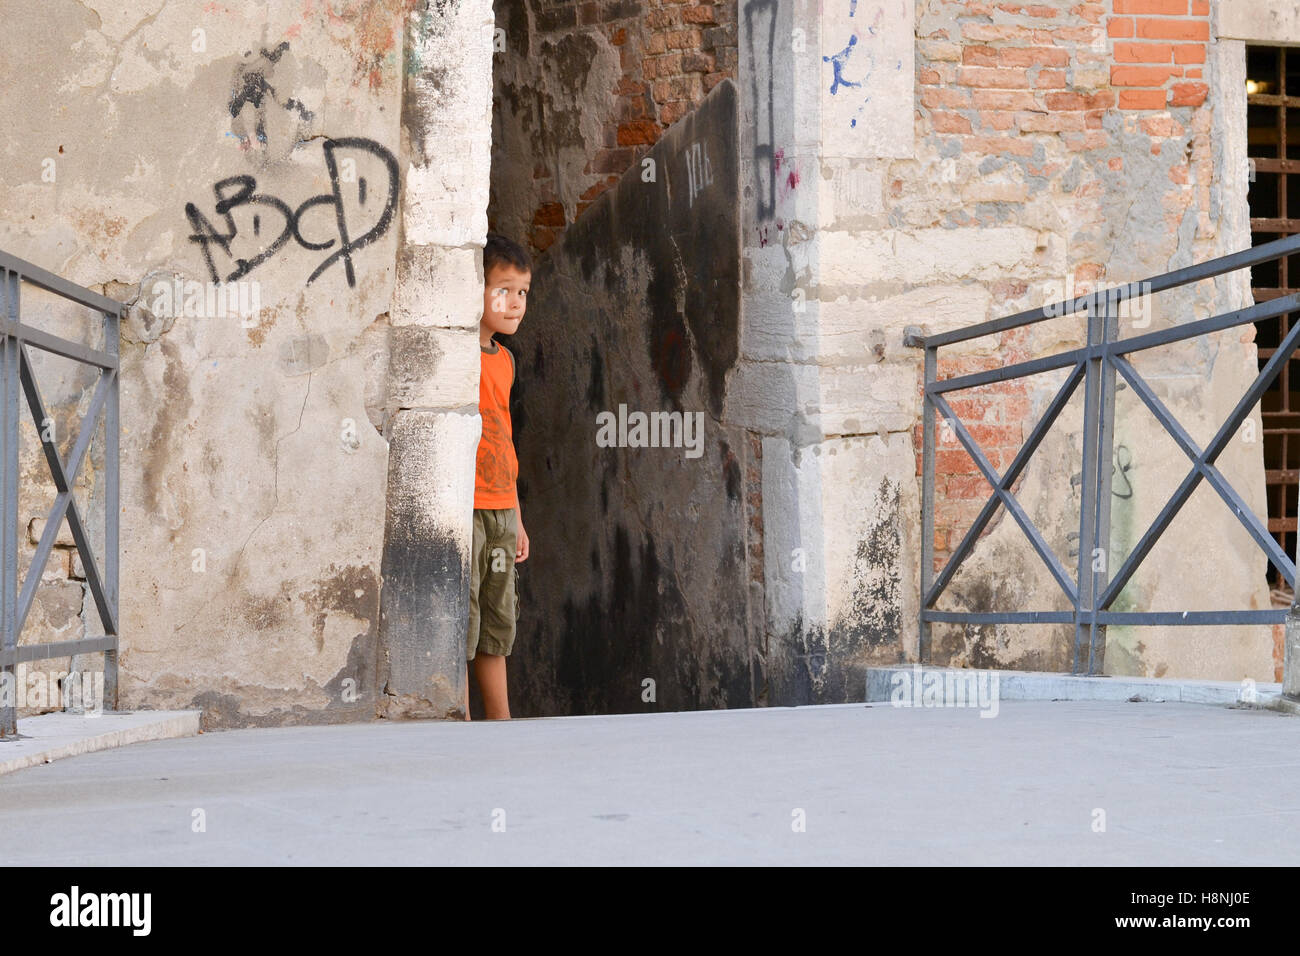 A Boy playing Hide and Seek in the streets of Venice, Italy. Stock Photo